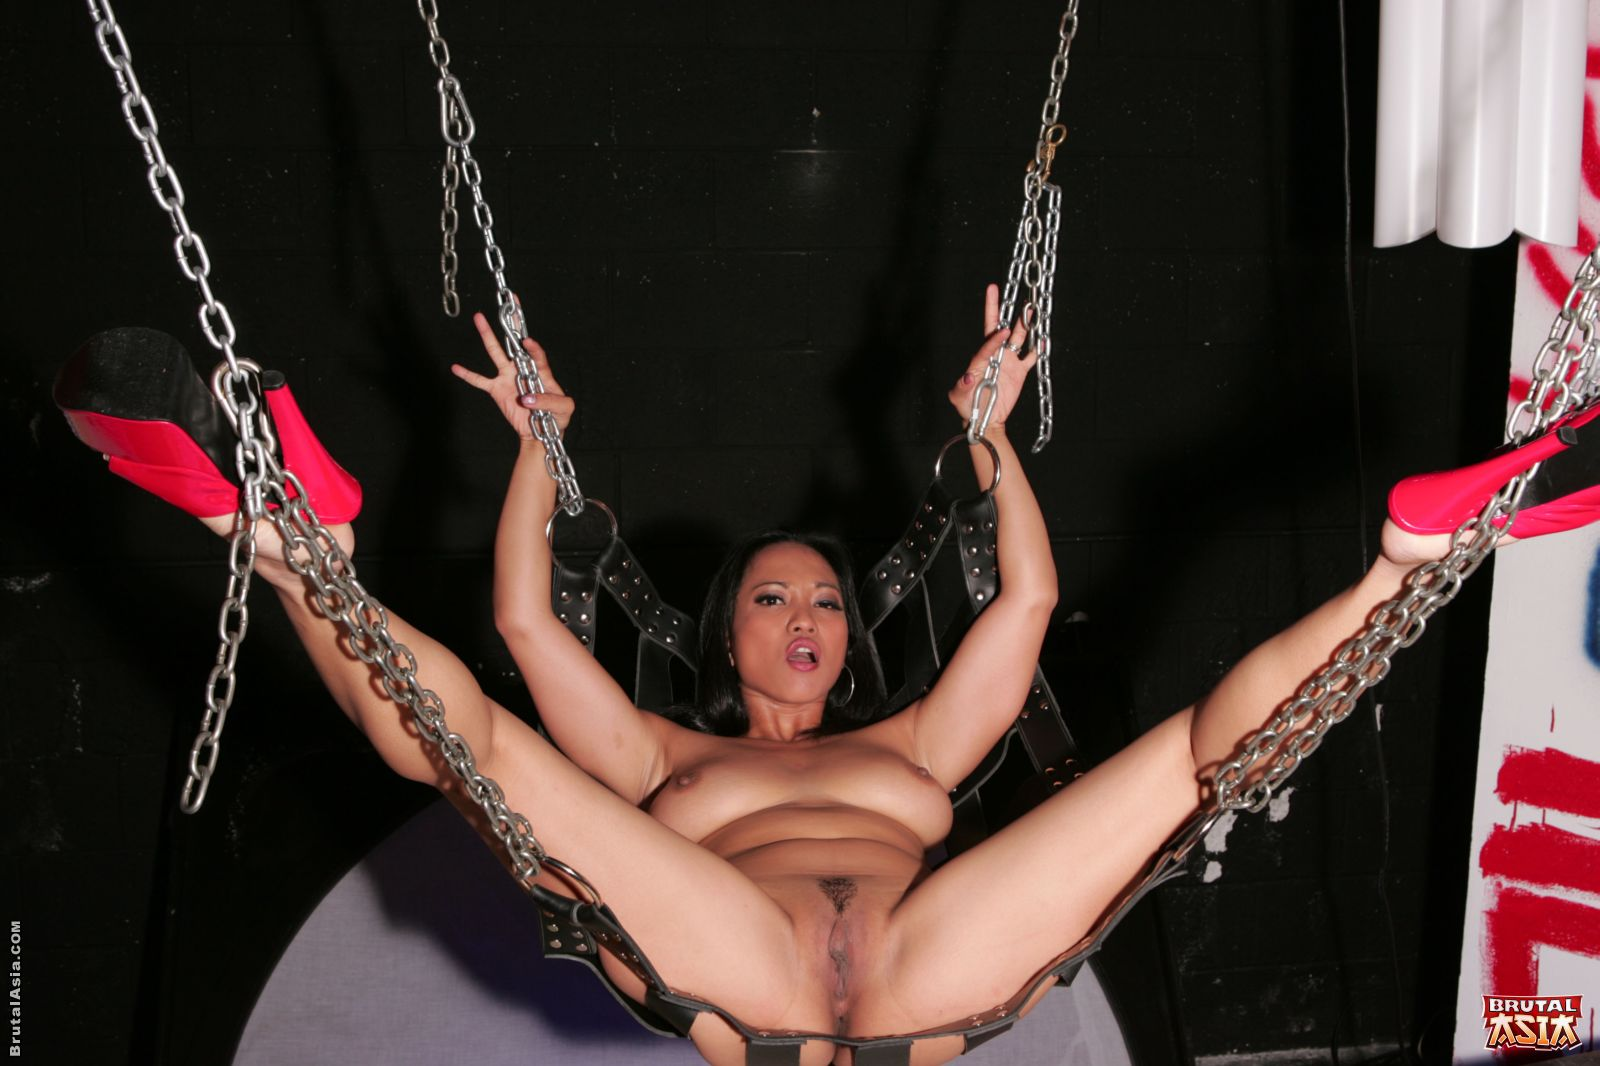 Brutal Asia 507498 Annie Cruz Annie Cruz And Loni Exposes Her Pink To Lesbo BDSM Fantasy Brutal Asia